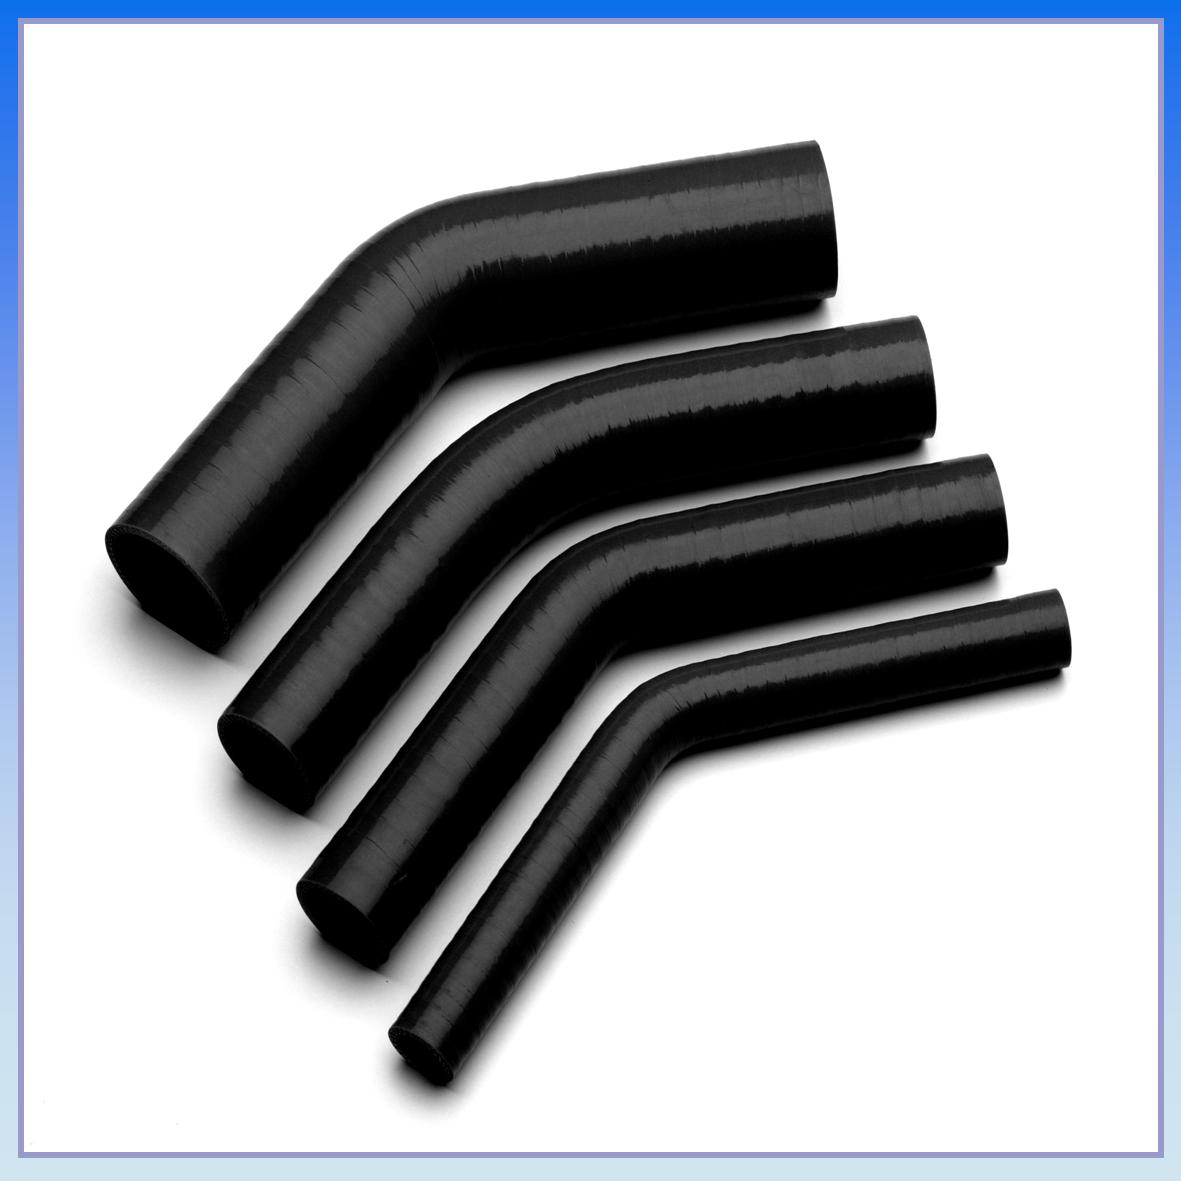 63mm 2 1 2 I D Black 45 Degree Silicone Elbow Hose Pipe